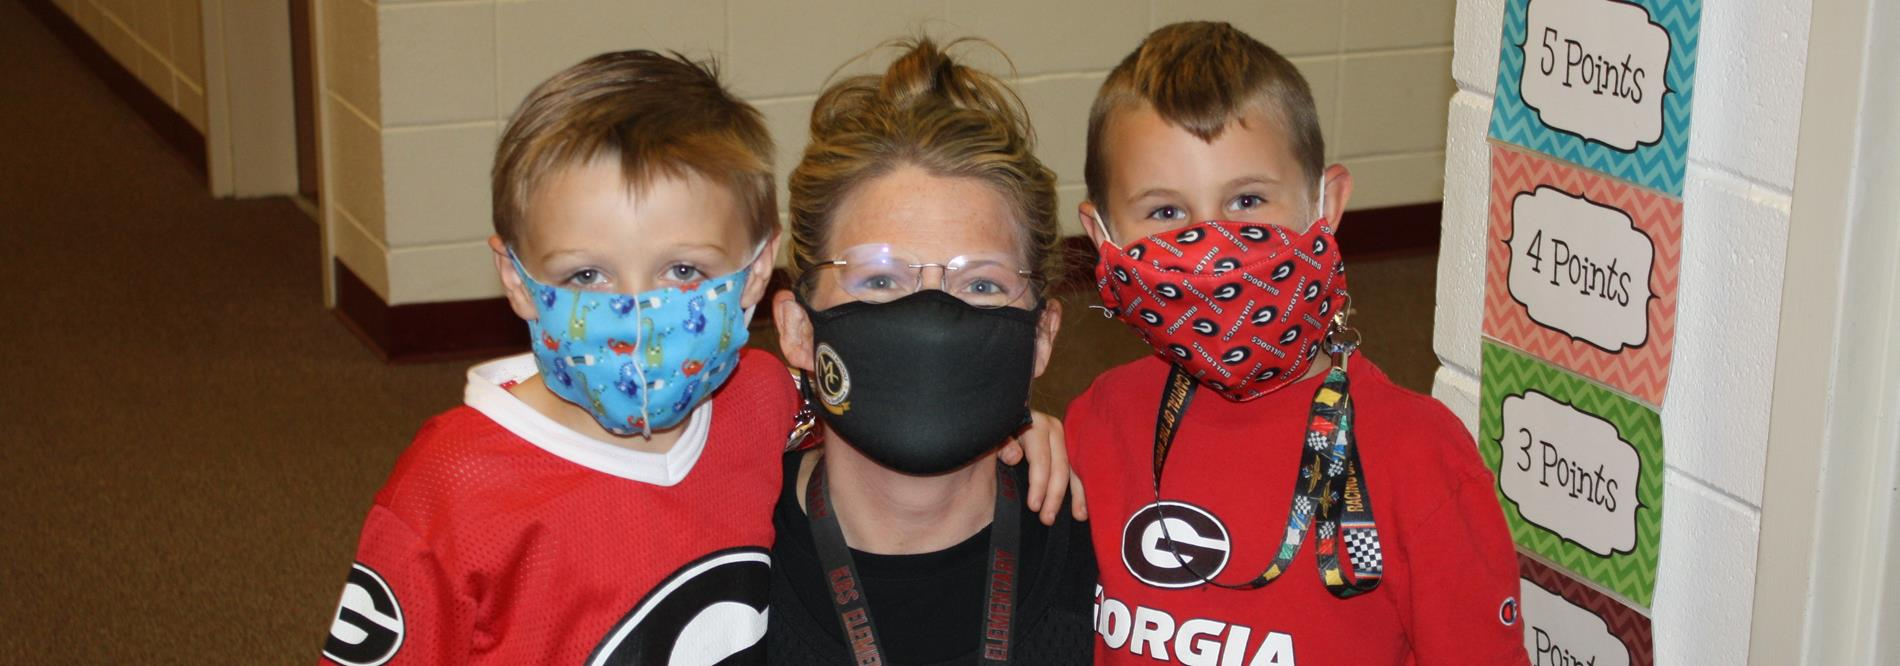 A teacher and her students pose with their GA Bulldogs clothing.